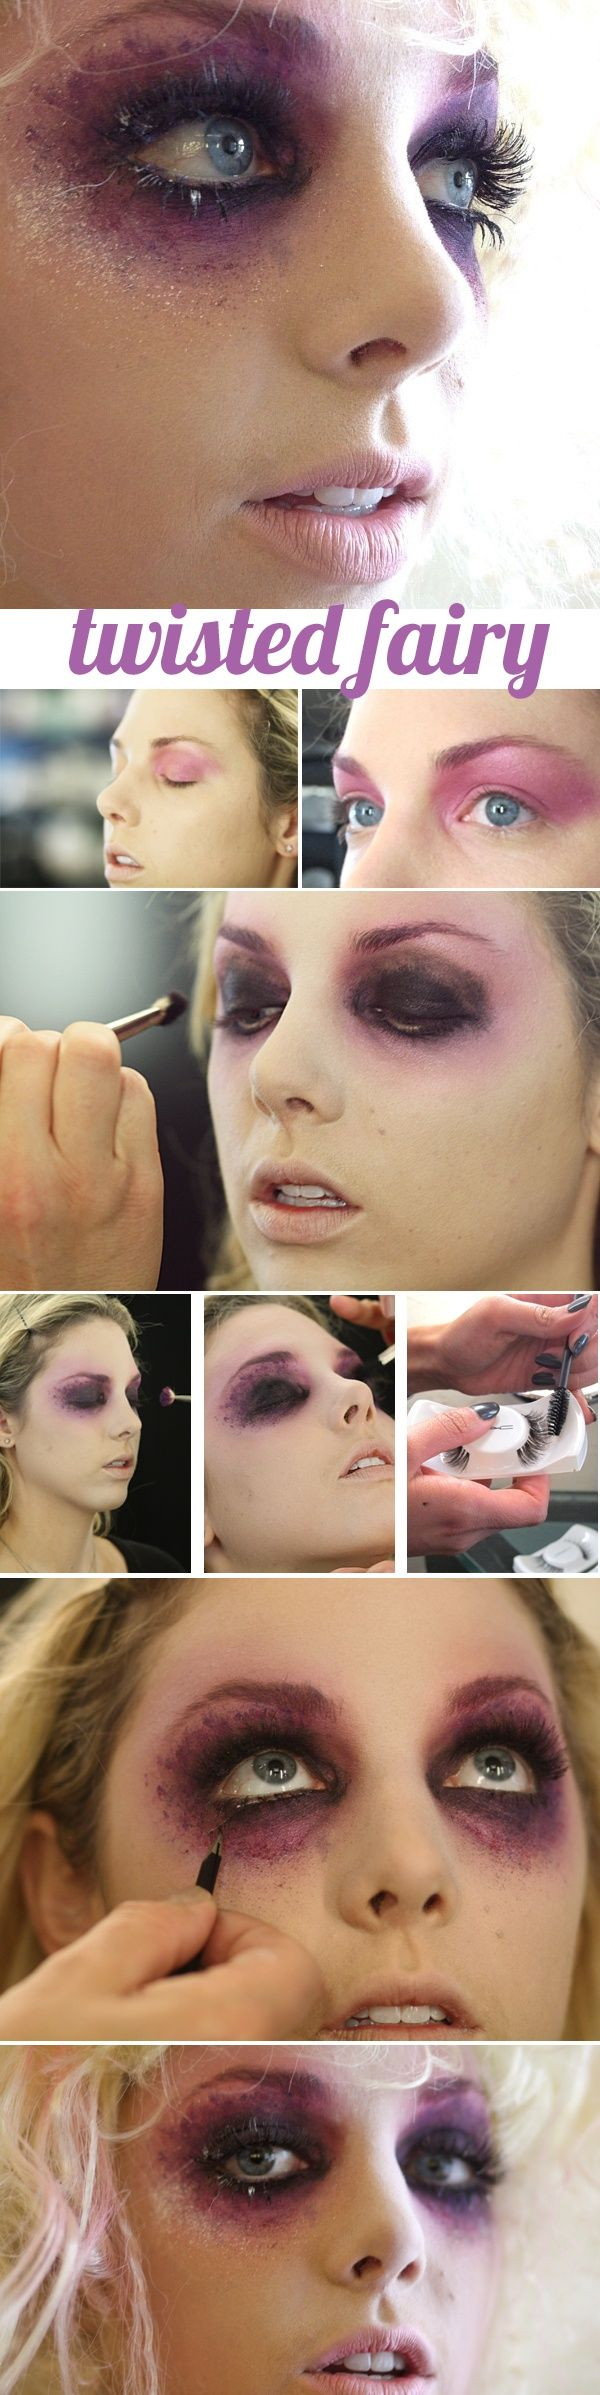 Fairy makeup tutorial images any tutorial examples best ideas for makeup tutorials take your fairy costume to the picture baditri images baditri Image collections